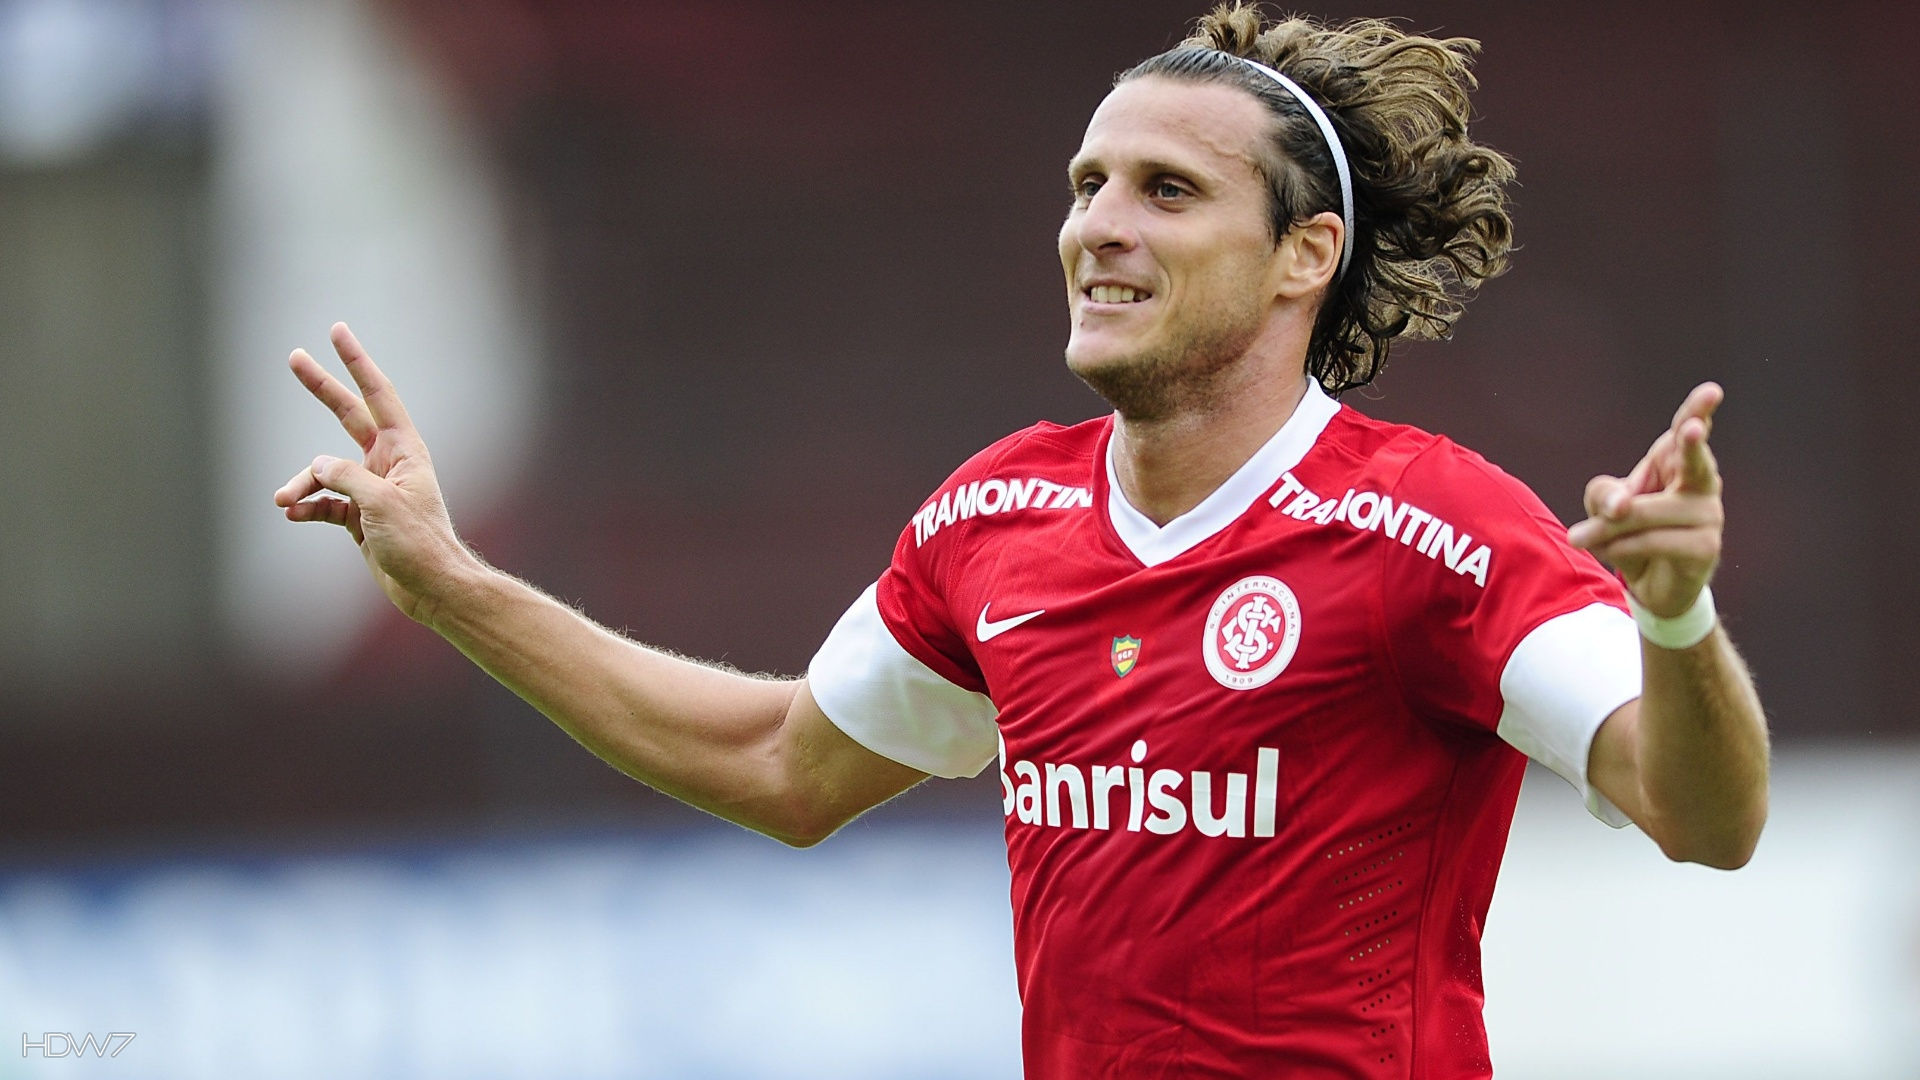 go forlan internacional wallpaper